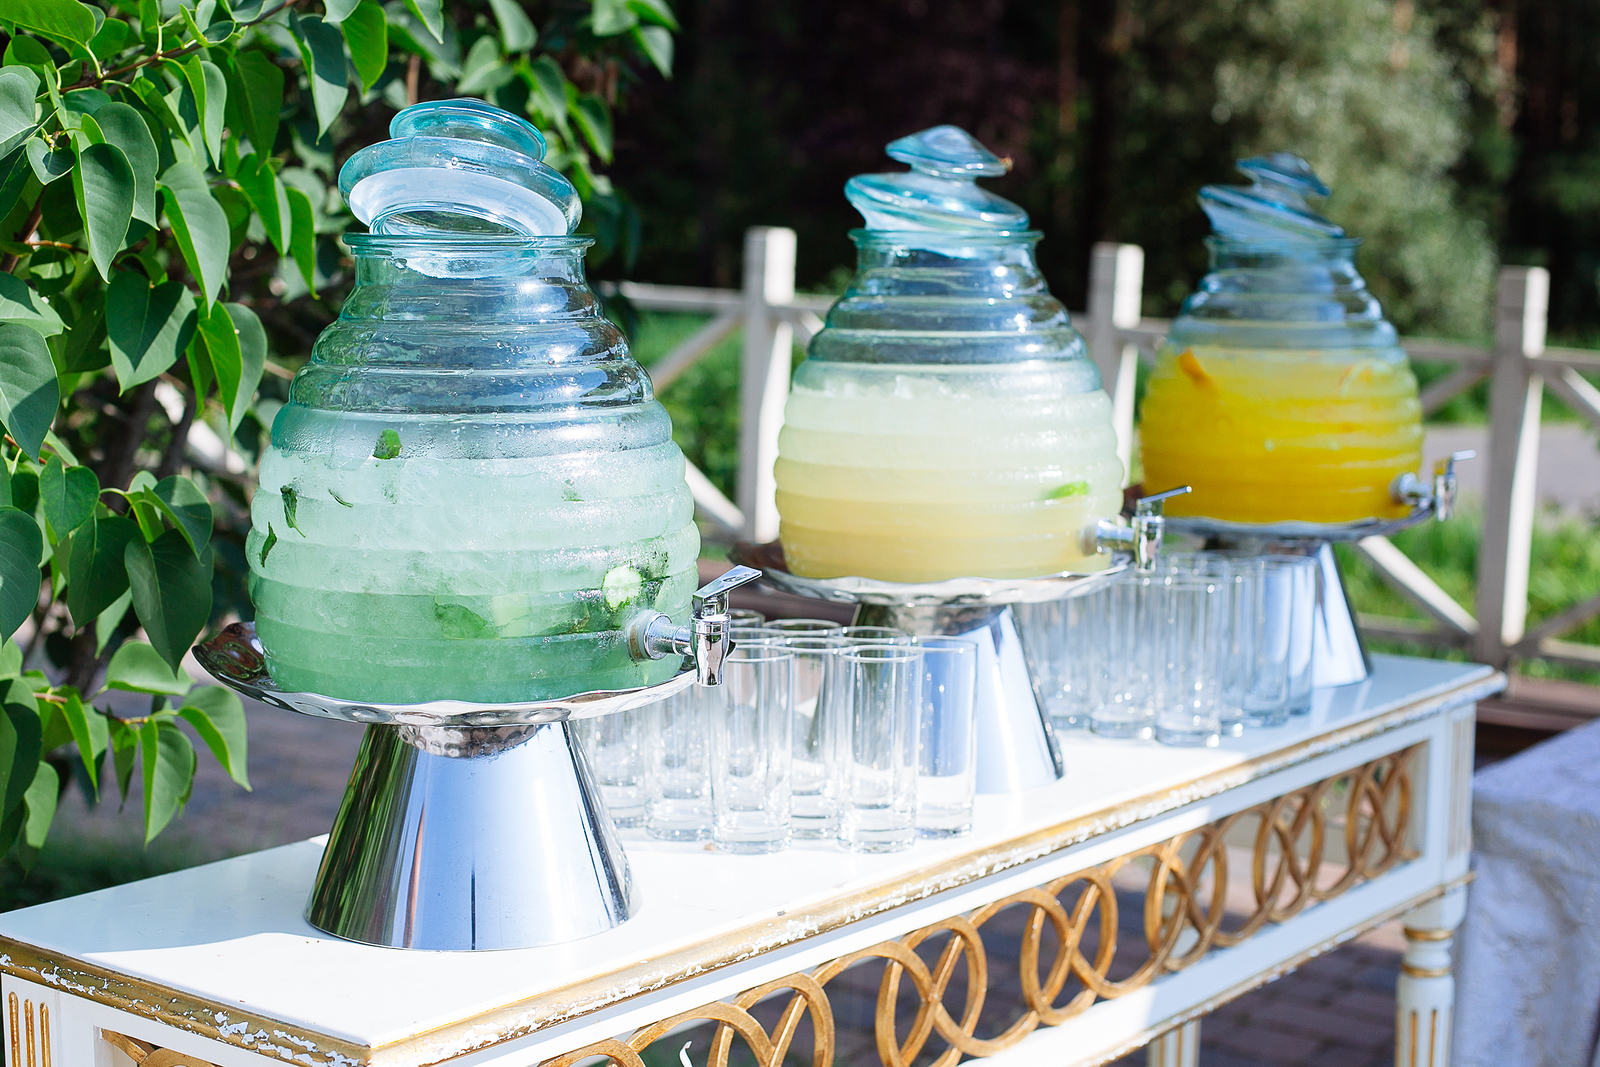 Row of crystal lemonade bowls. Served for a garden outdoor party or wedding